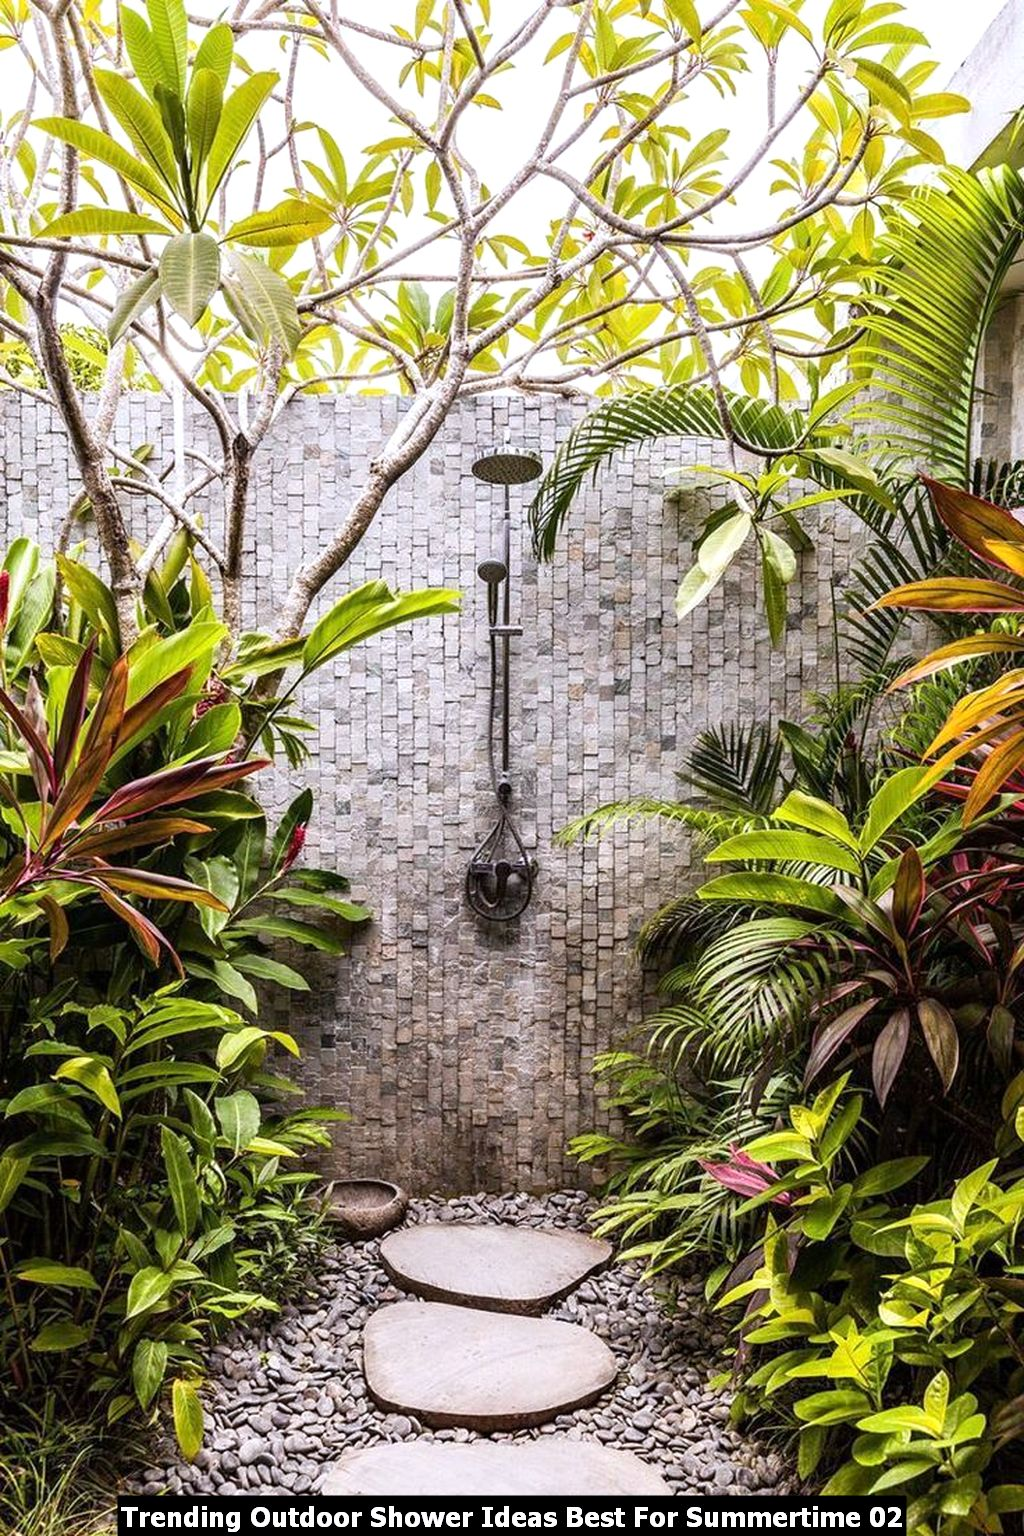 Trending Outdoor Shower Ideas Best For Summertime 02